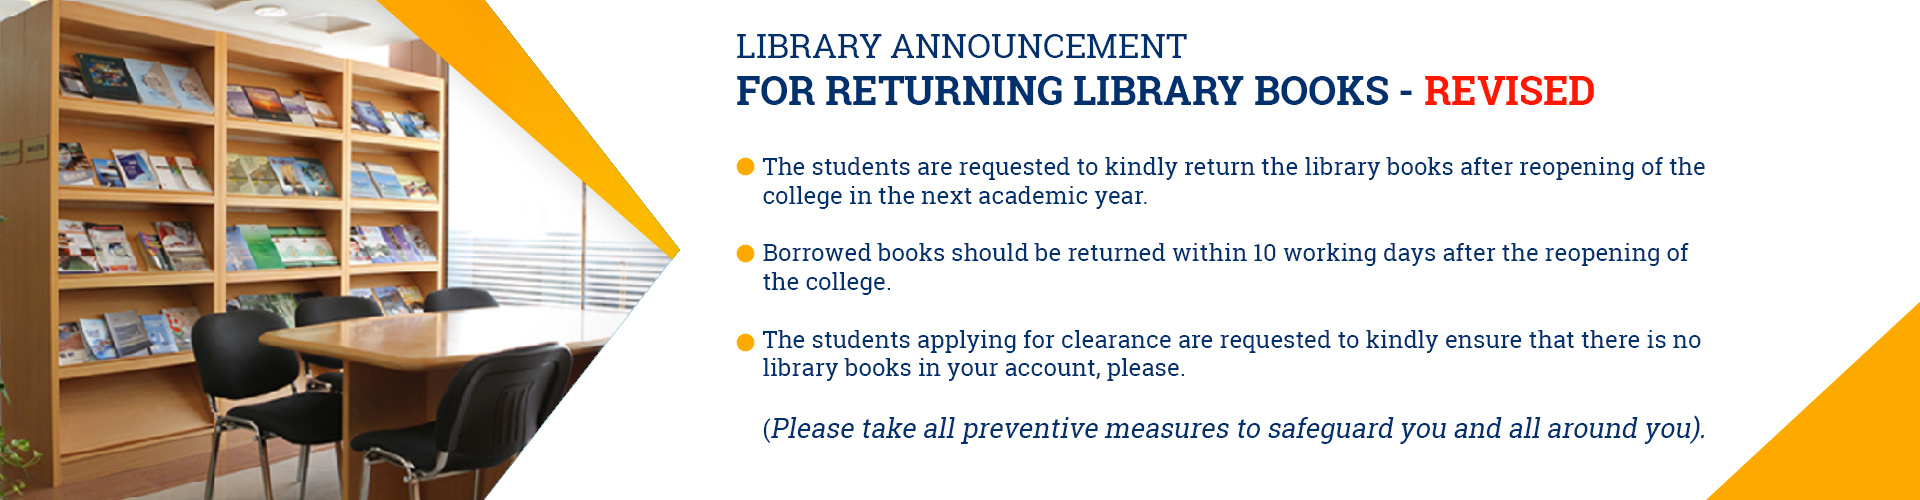 Library Announcement for Returning Library Books (Revised)